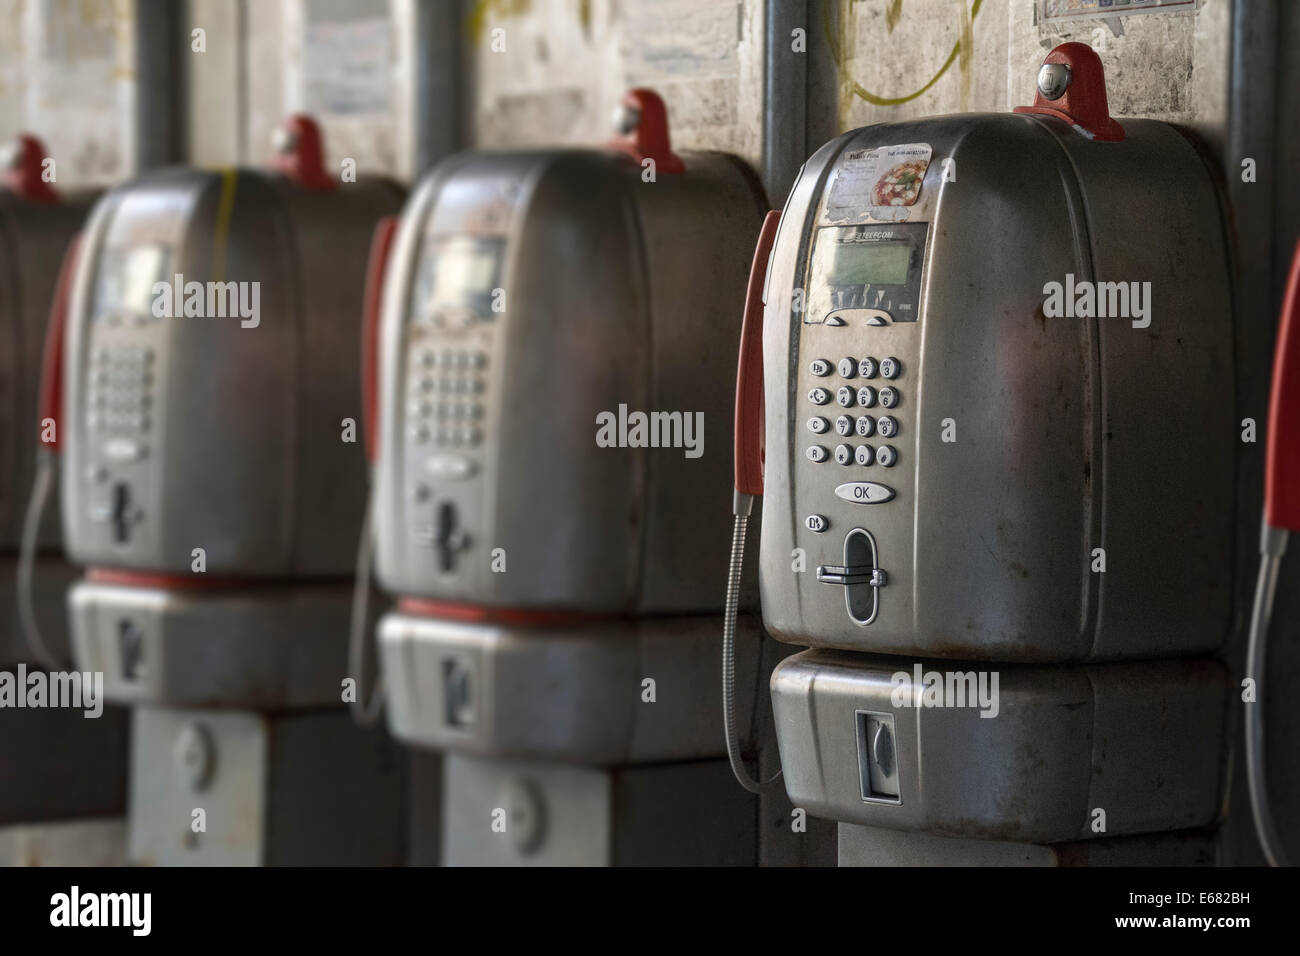 Line of old style pay phones located next to San Marco Square in Venice. Right to left orientation. - Stock Image